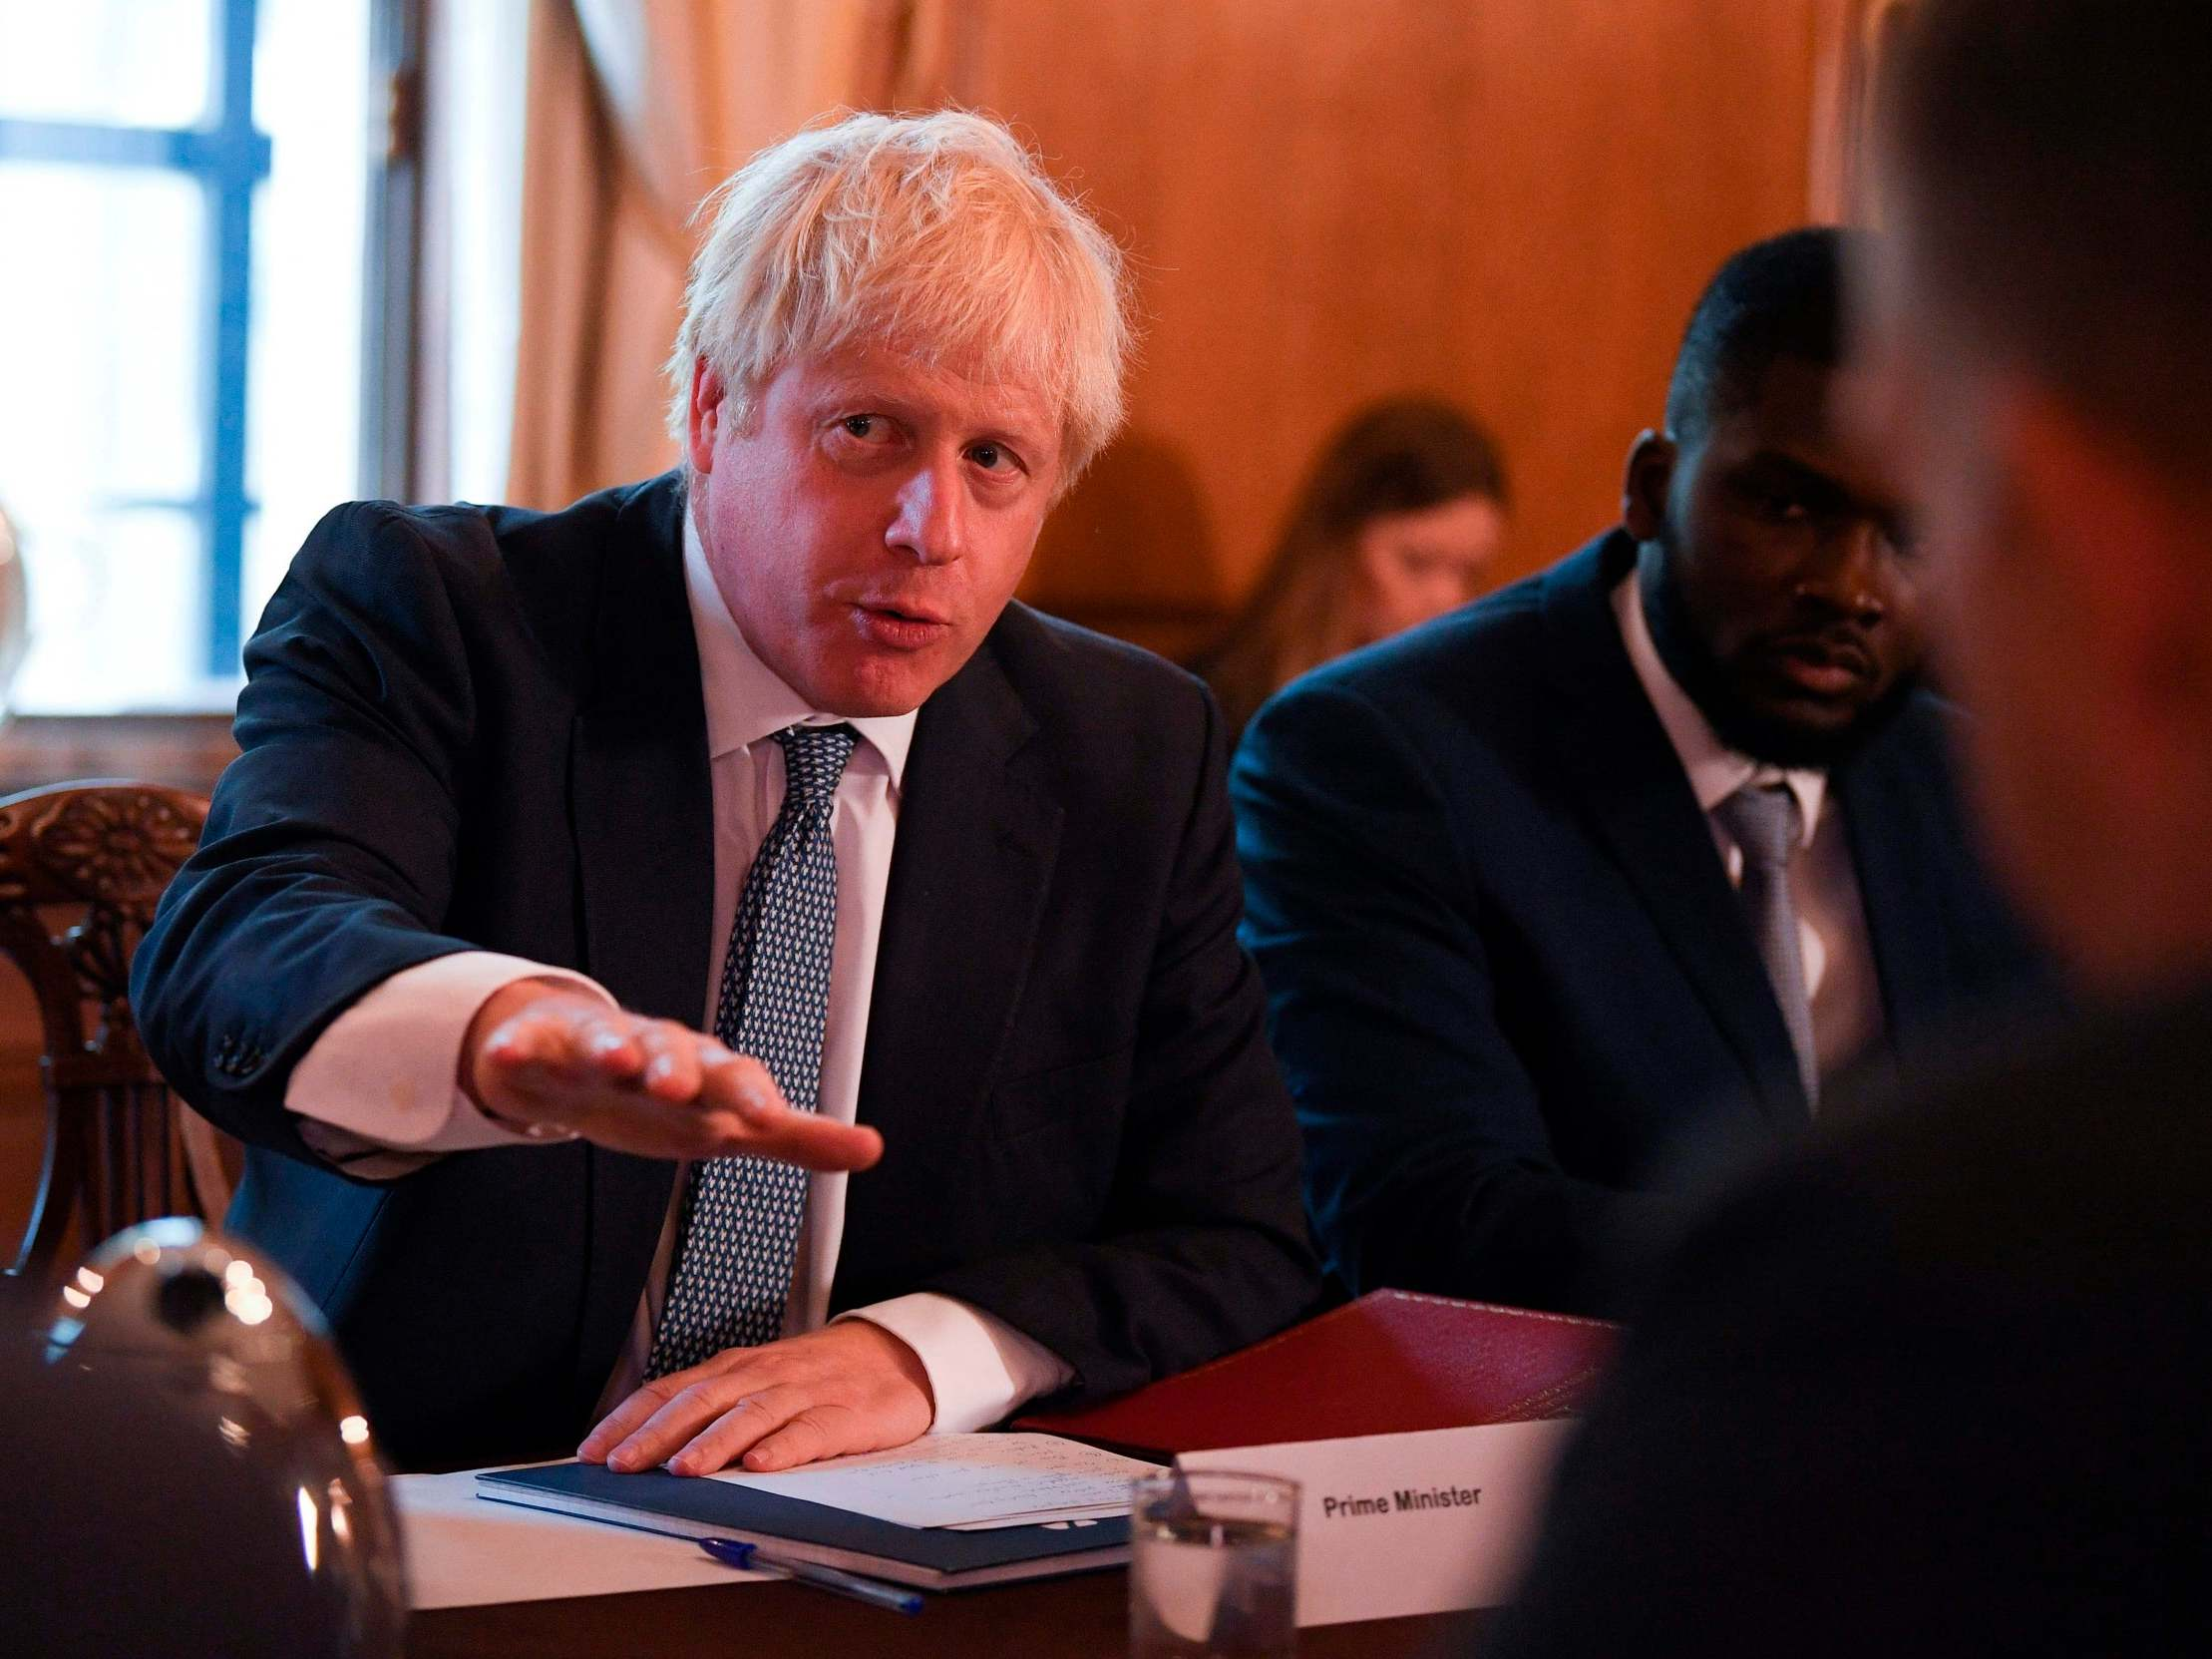 Boris Johnson thinks building more prisons can curtail violence – he couldn't be any more wrong